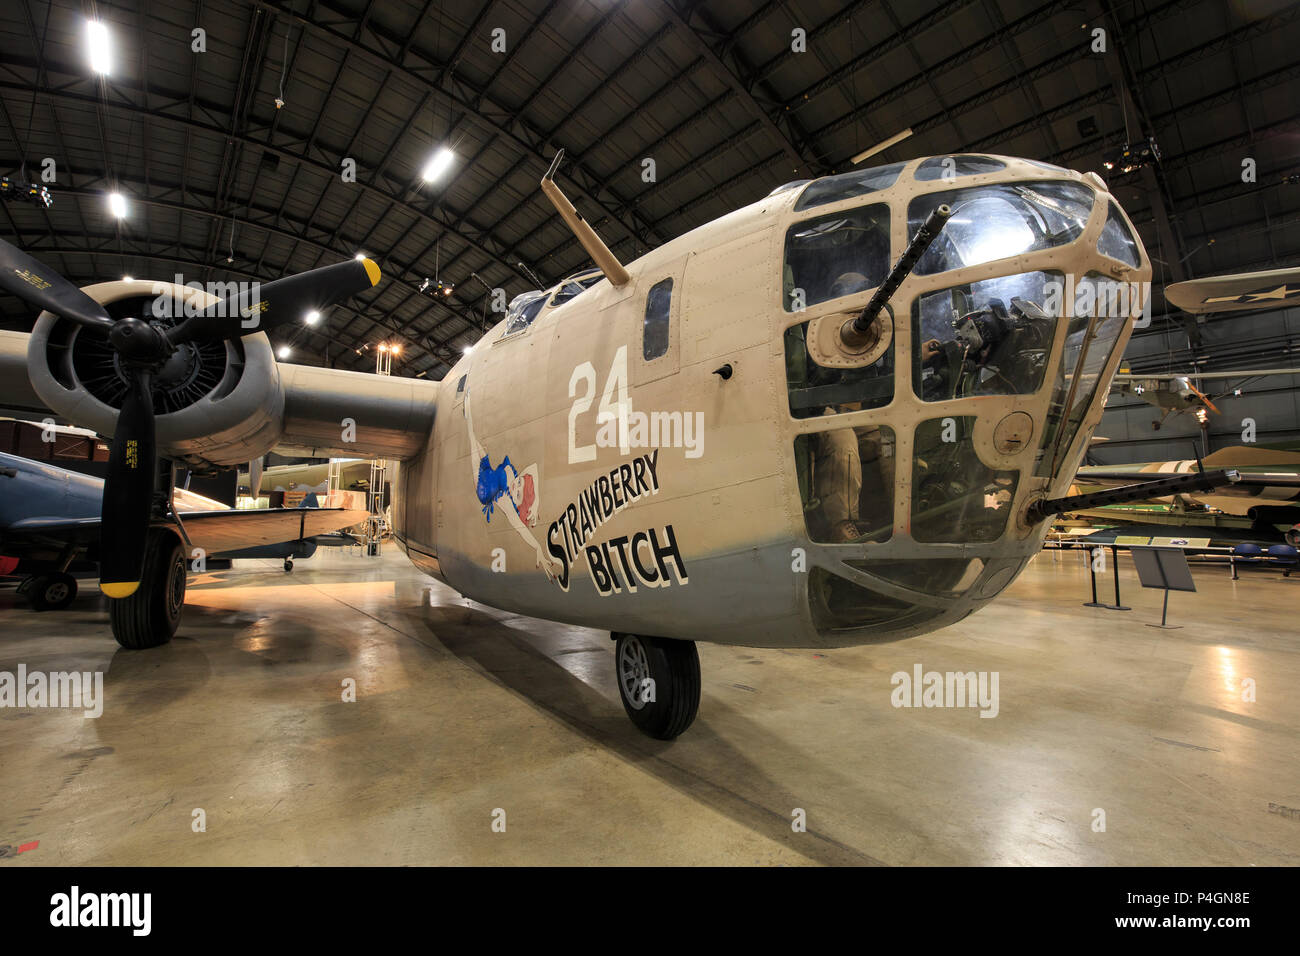 Consolidated B-24 D Liberator American World War 2 bomber. - Stock Image